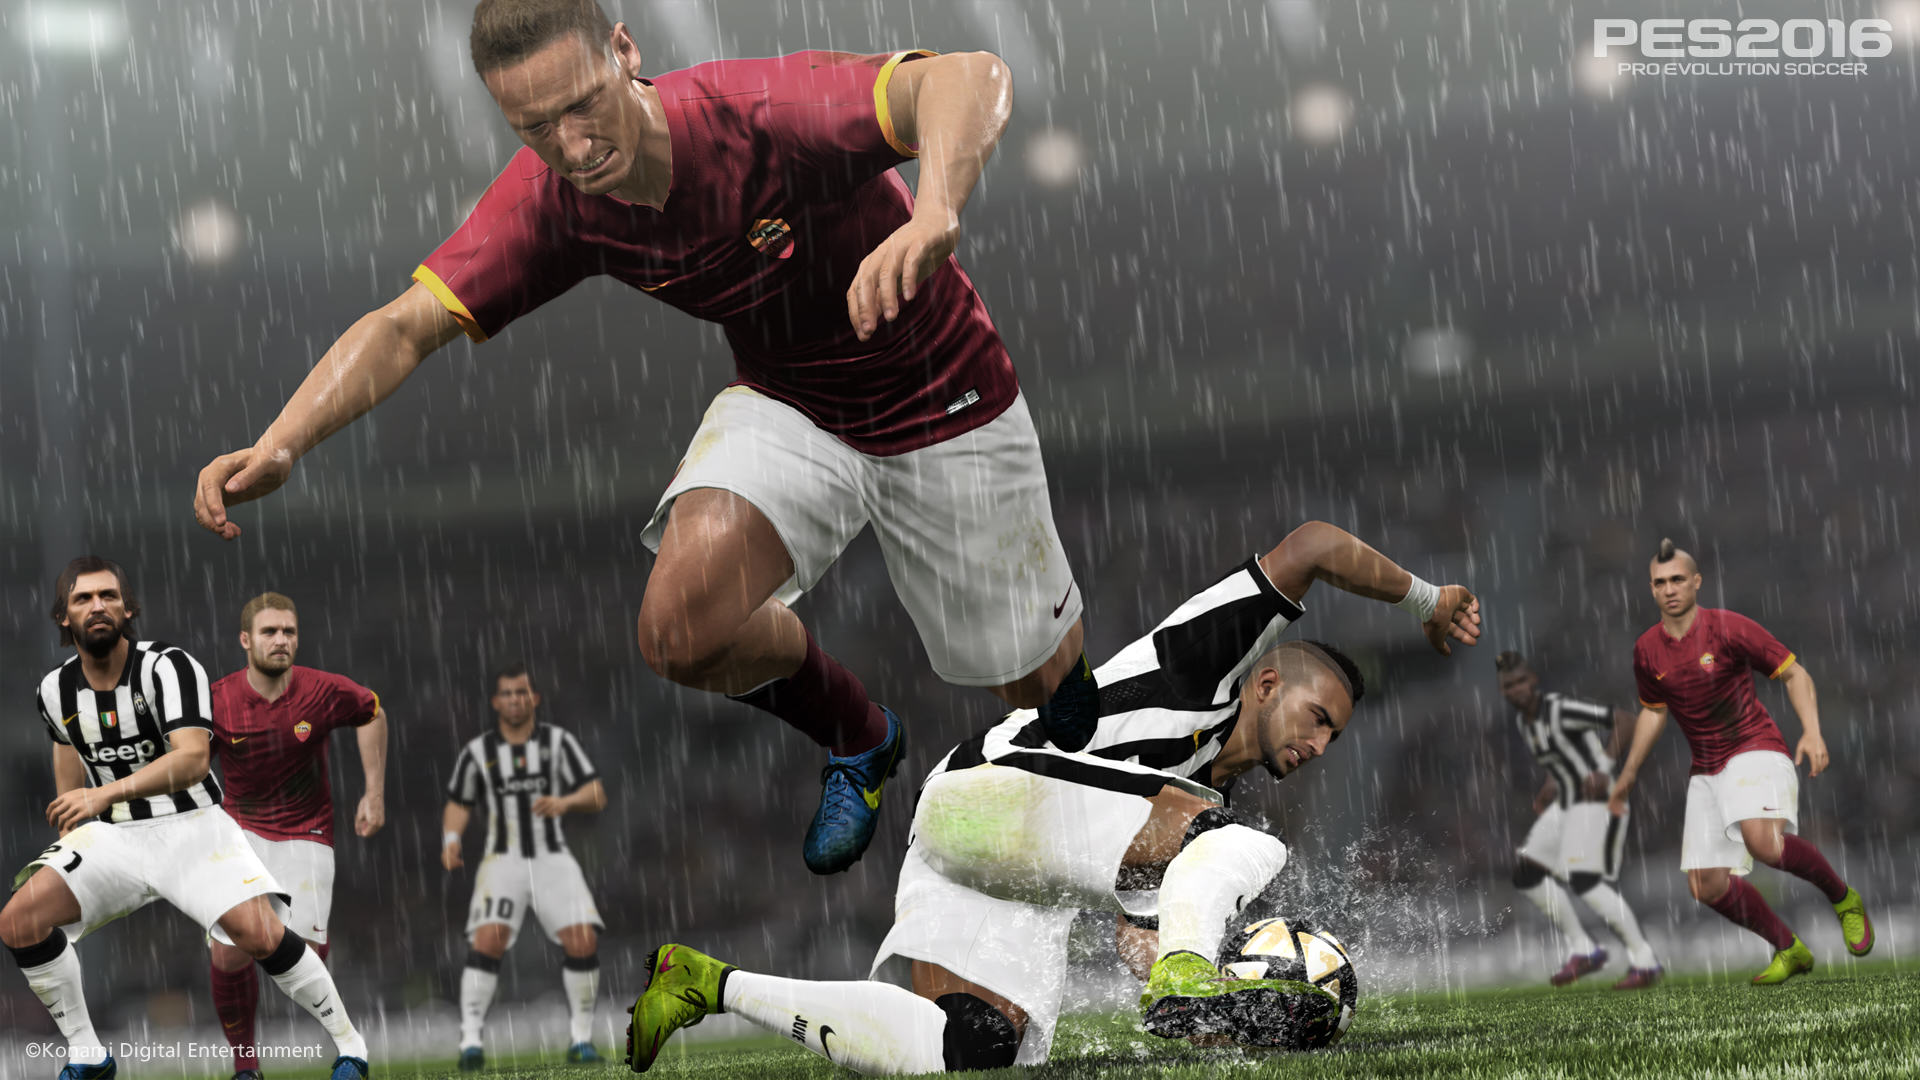 PES2016 weather 01